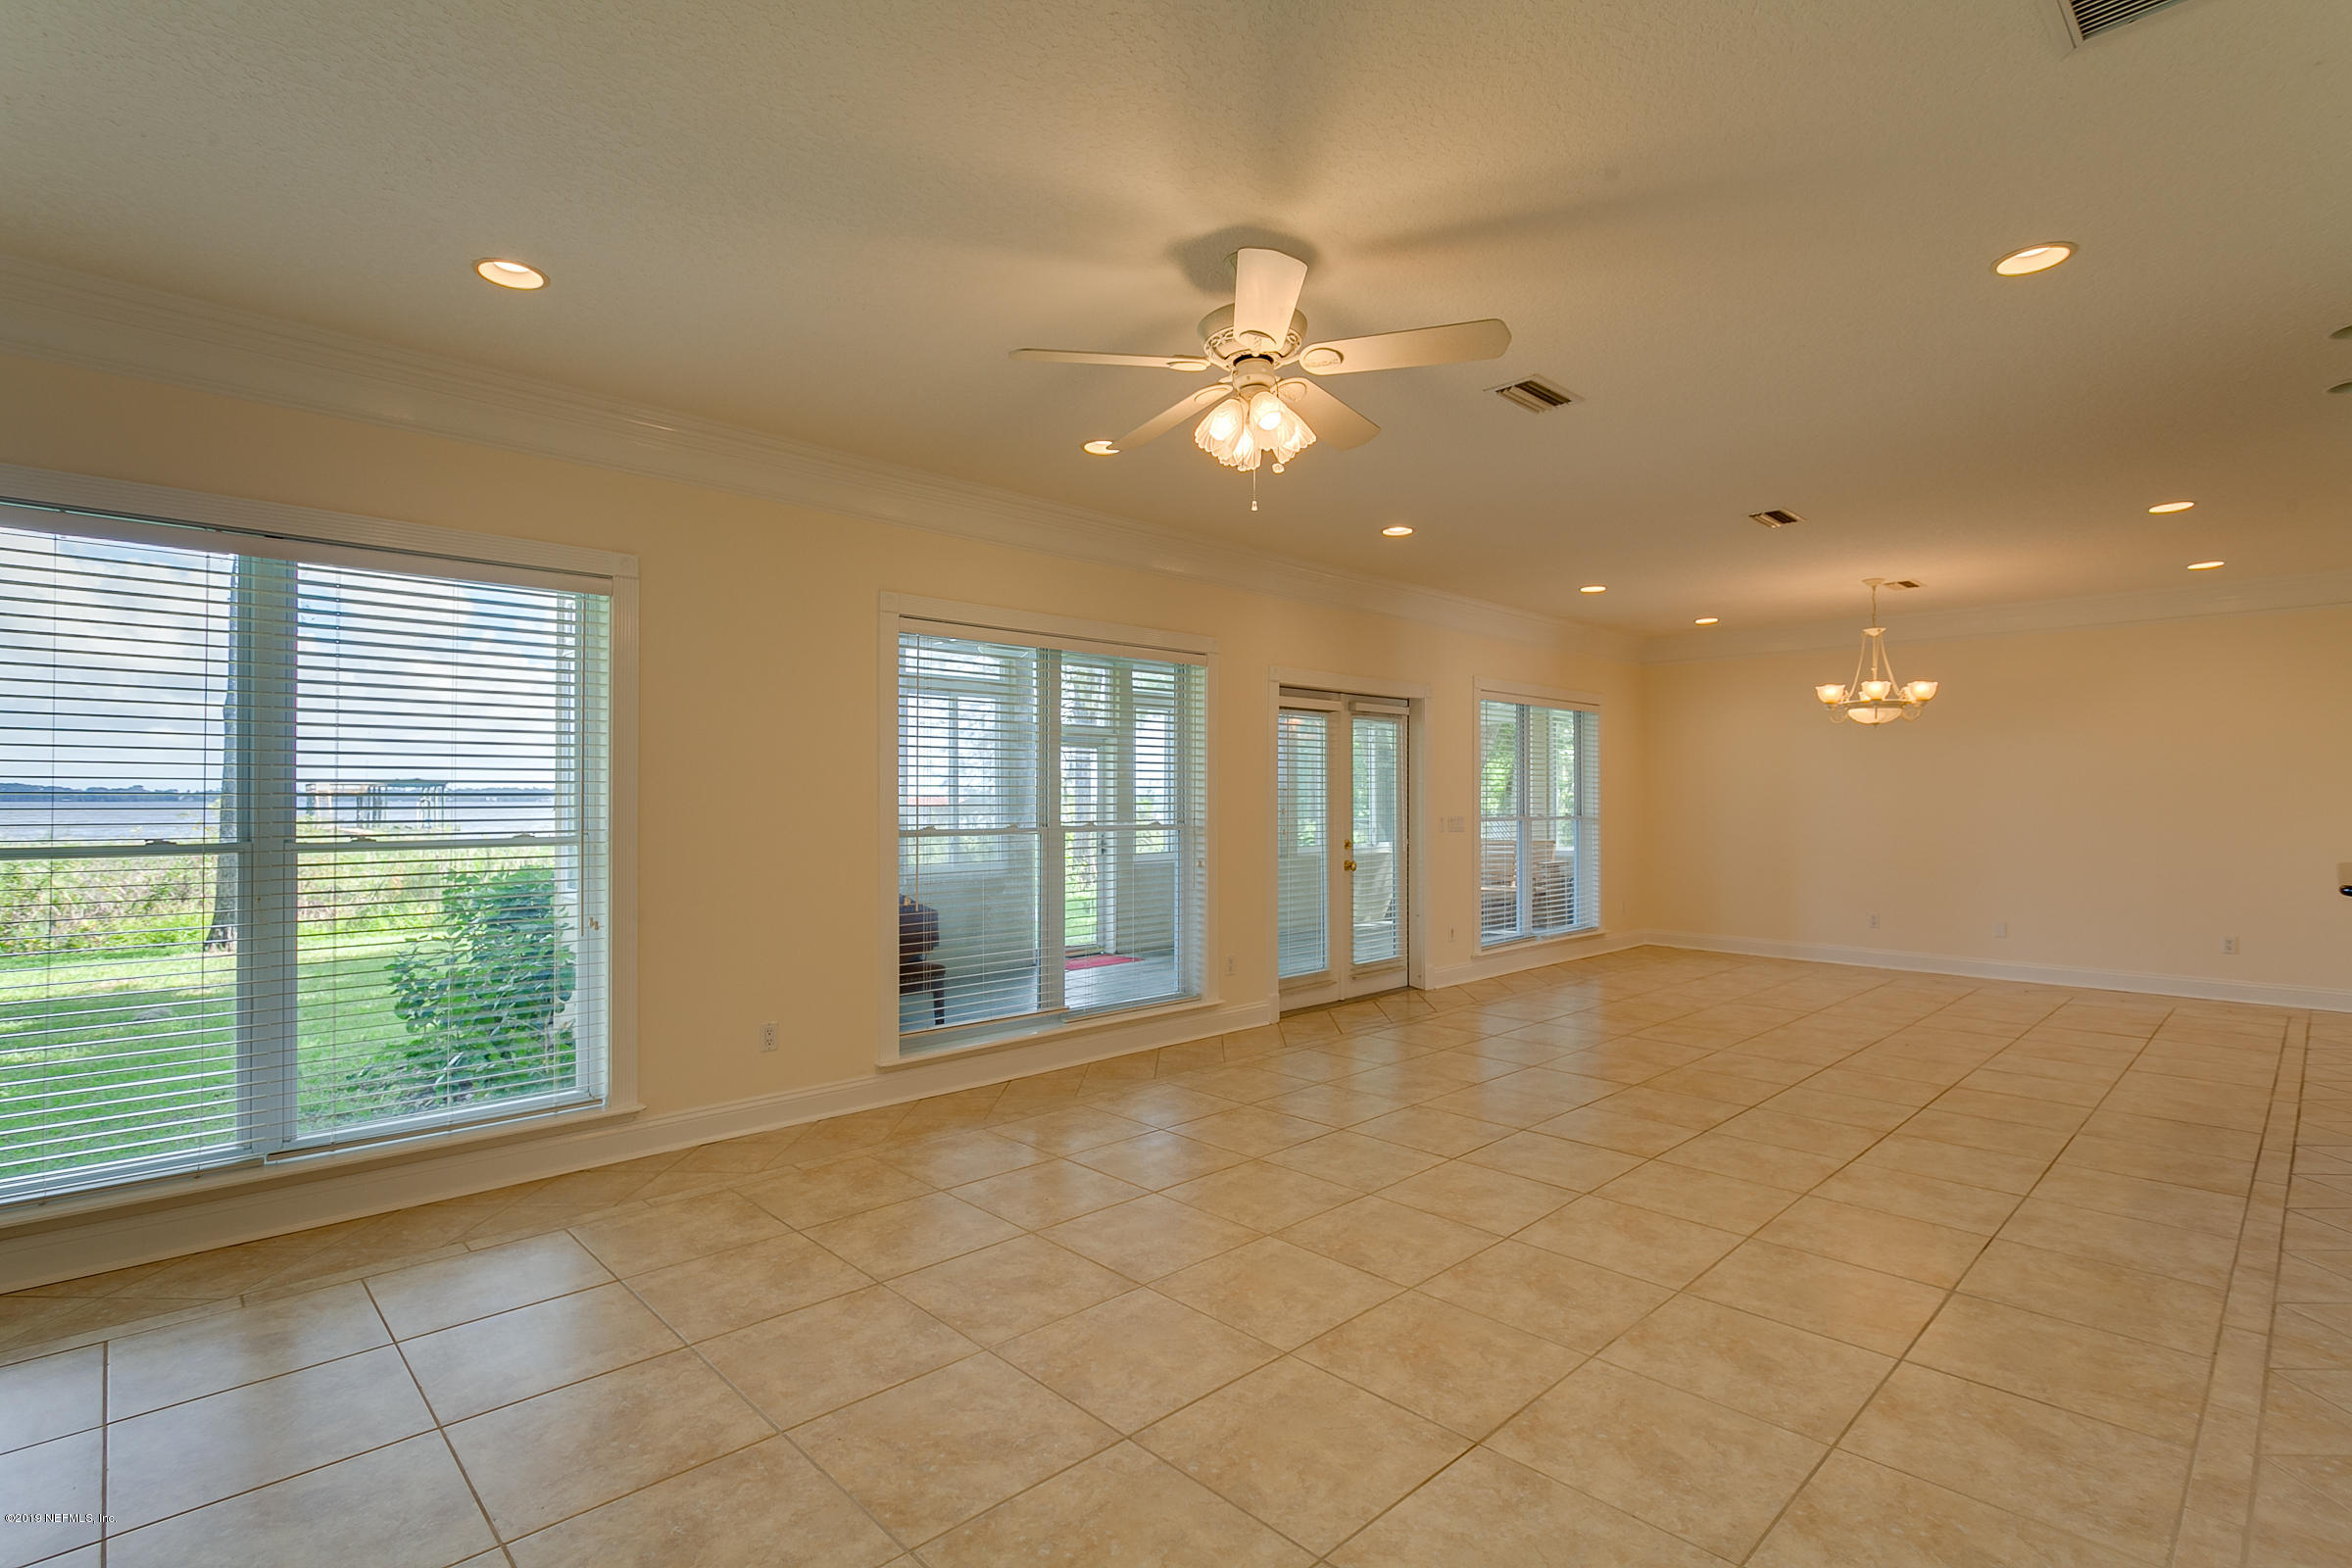 212 ST JOHNS, PALATKA, FLORIDA 32177, 6 Bedrooms Bedrooms, ,4 BathroomsBathrooms,Residential,For sale,ST JOHNS,1020662